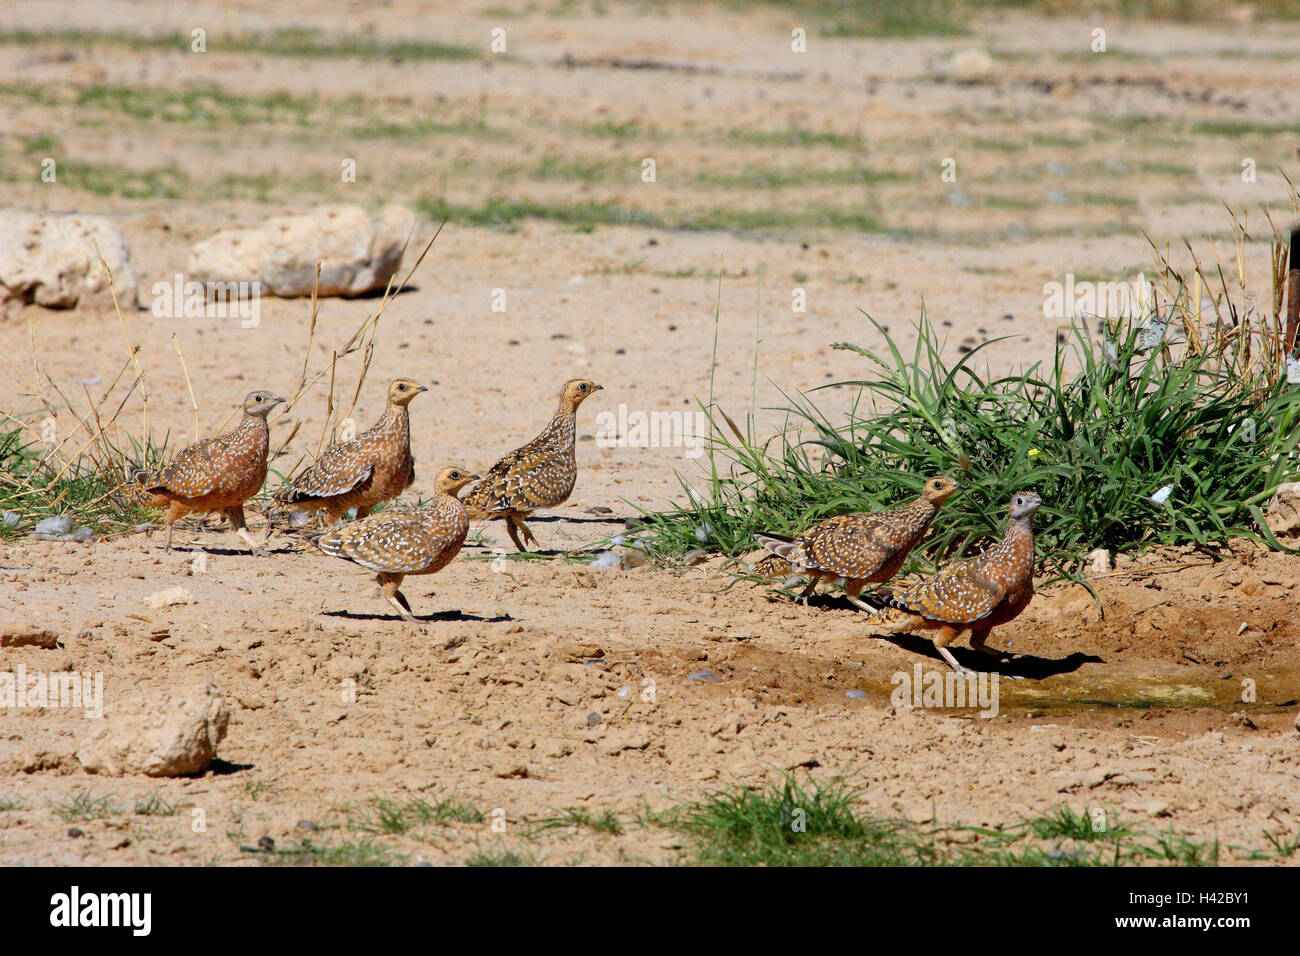 Blotch flight chicken, Burchell `see Sandgrouse, - Stock Image